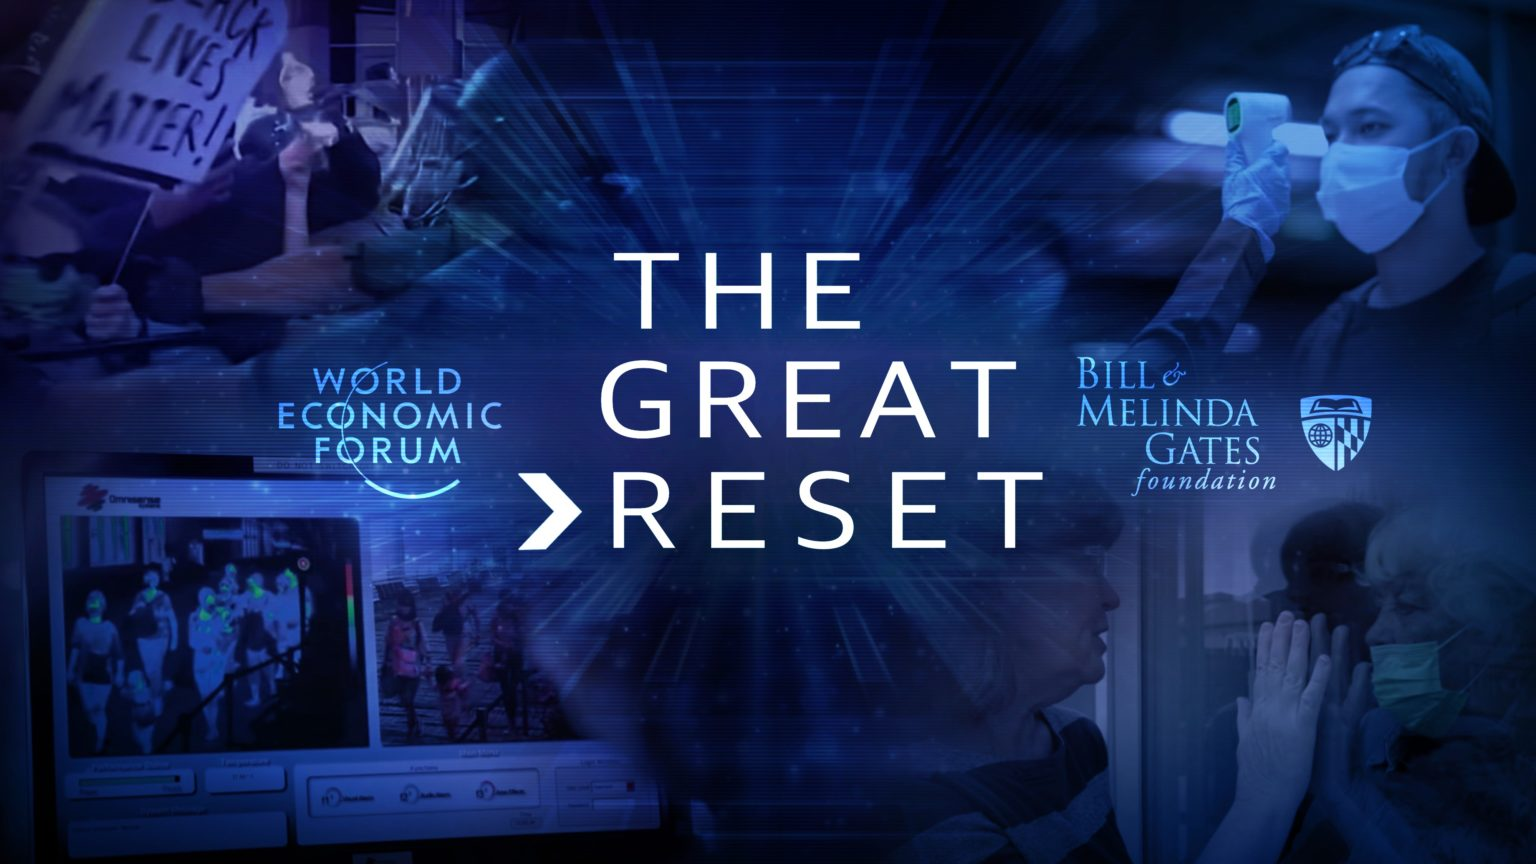 The Great Reset - Controlled Demolition for a New World